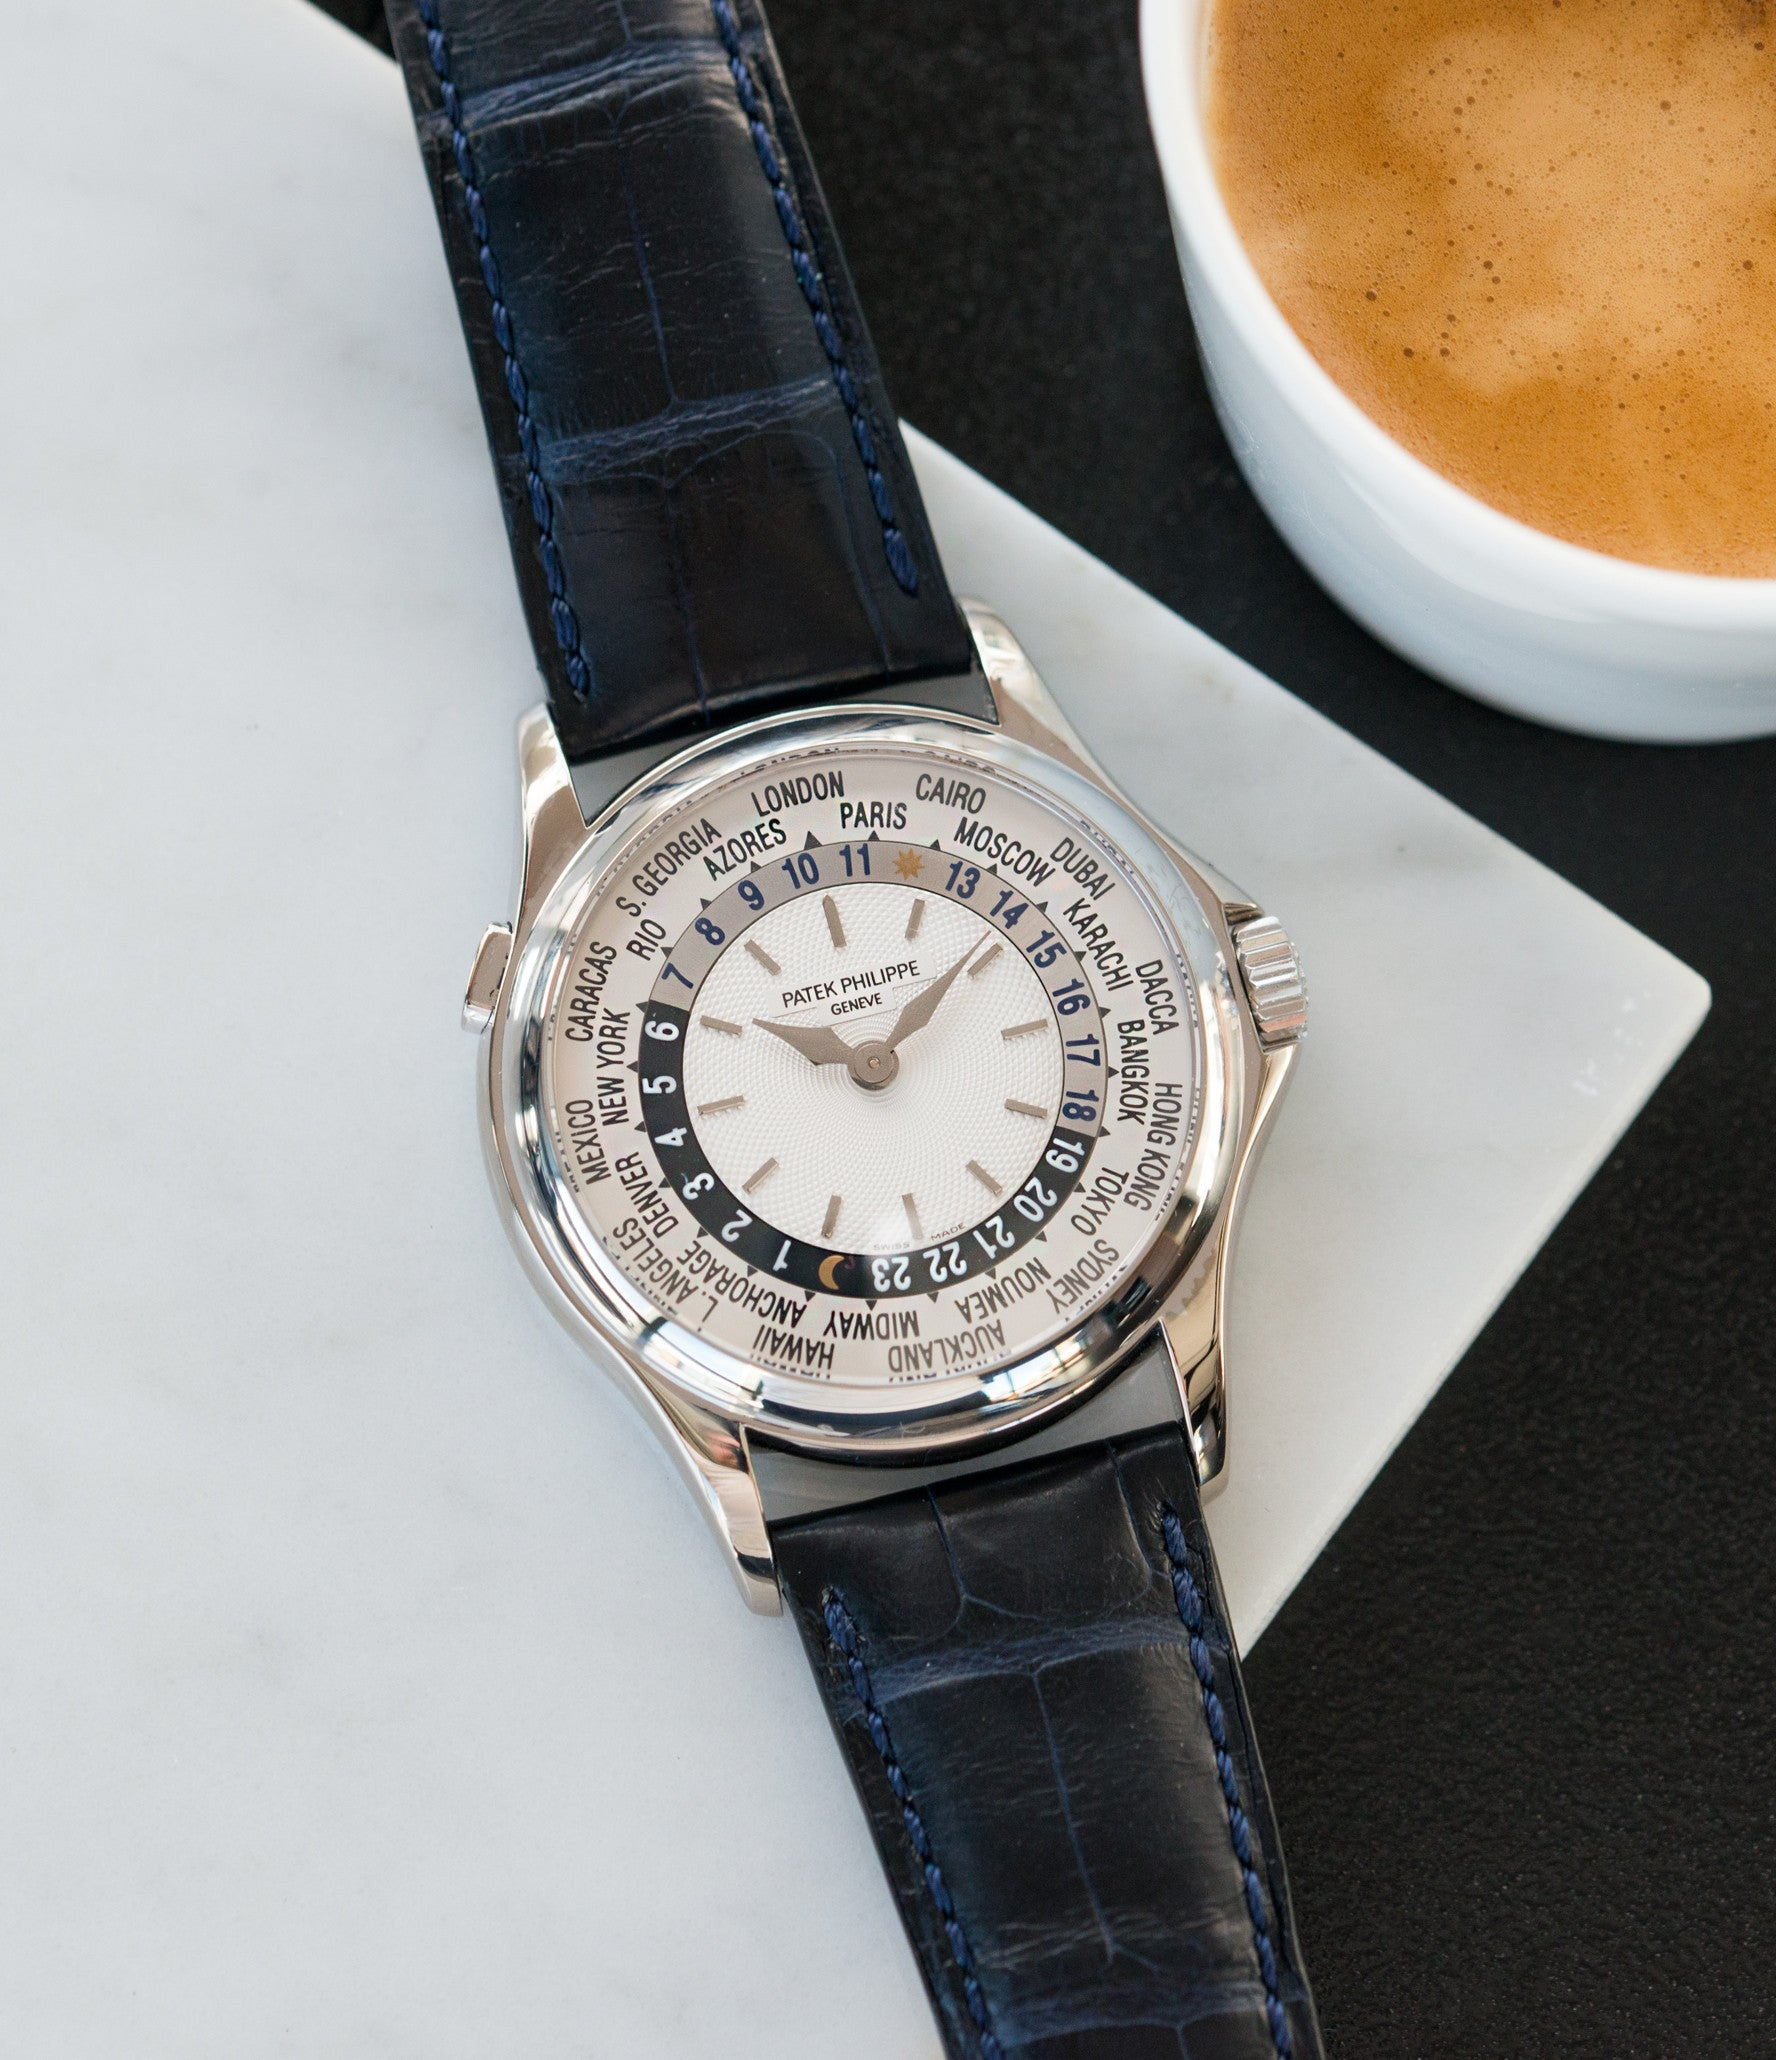 buy preowned luxury gents watch Patek Philippe 5110G-001 white gold World-timer luxury dress watch online for sale at A Collected Man London specialist preowned luxury watches